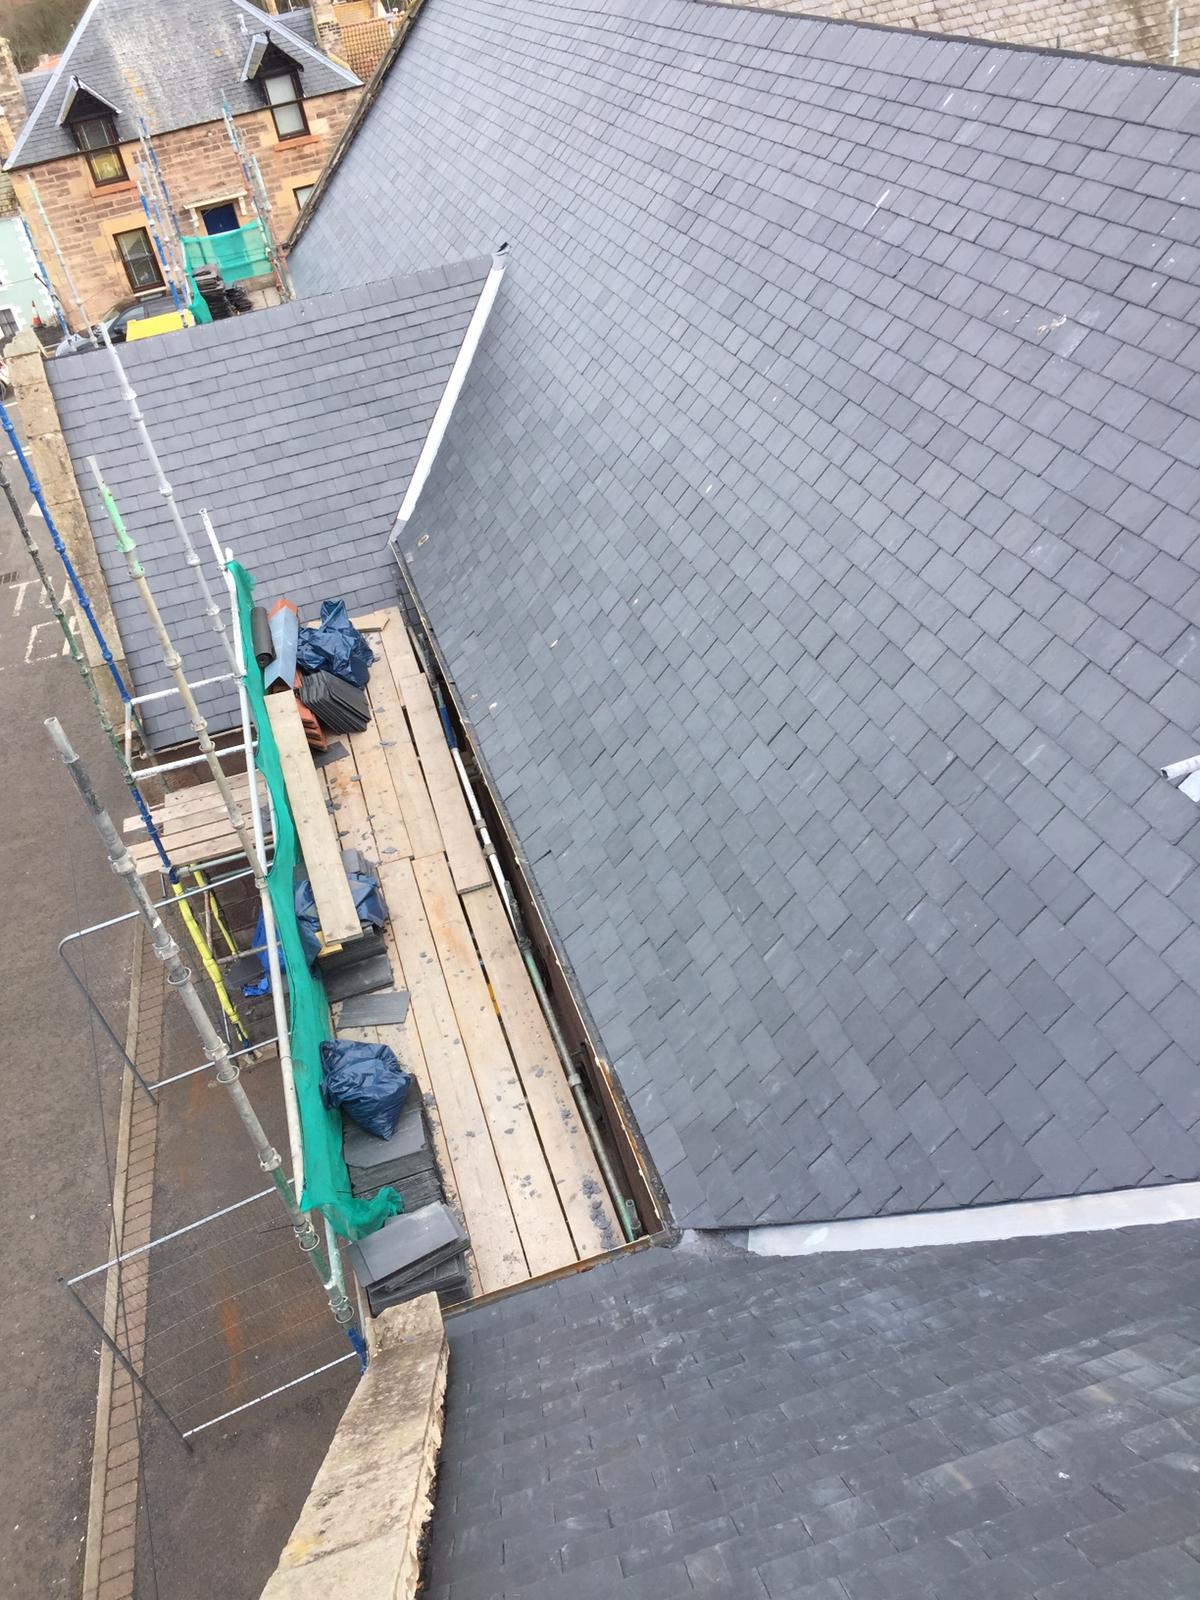 Recruiting roofers now!!